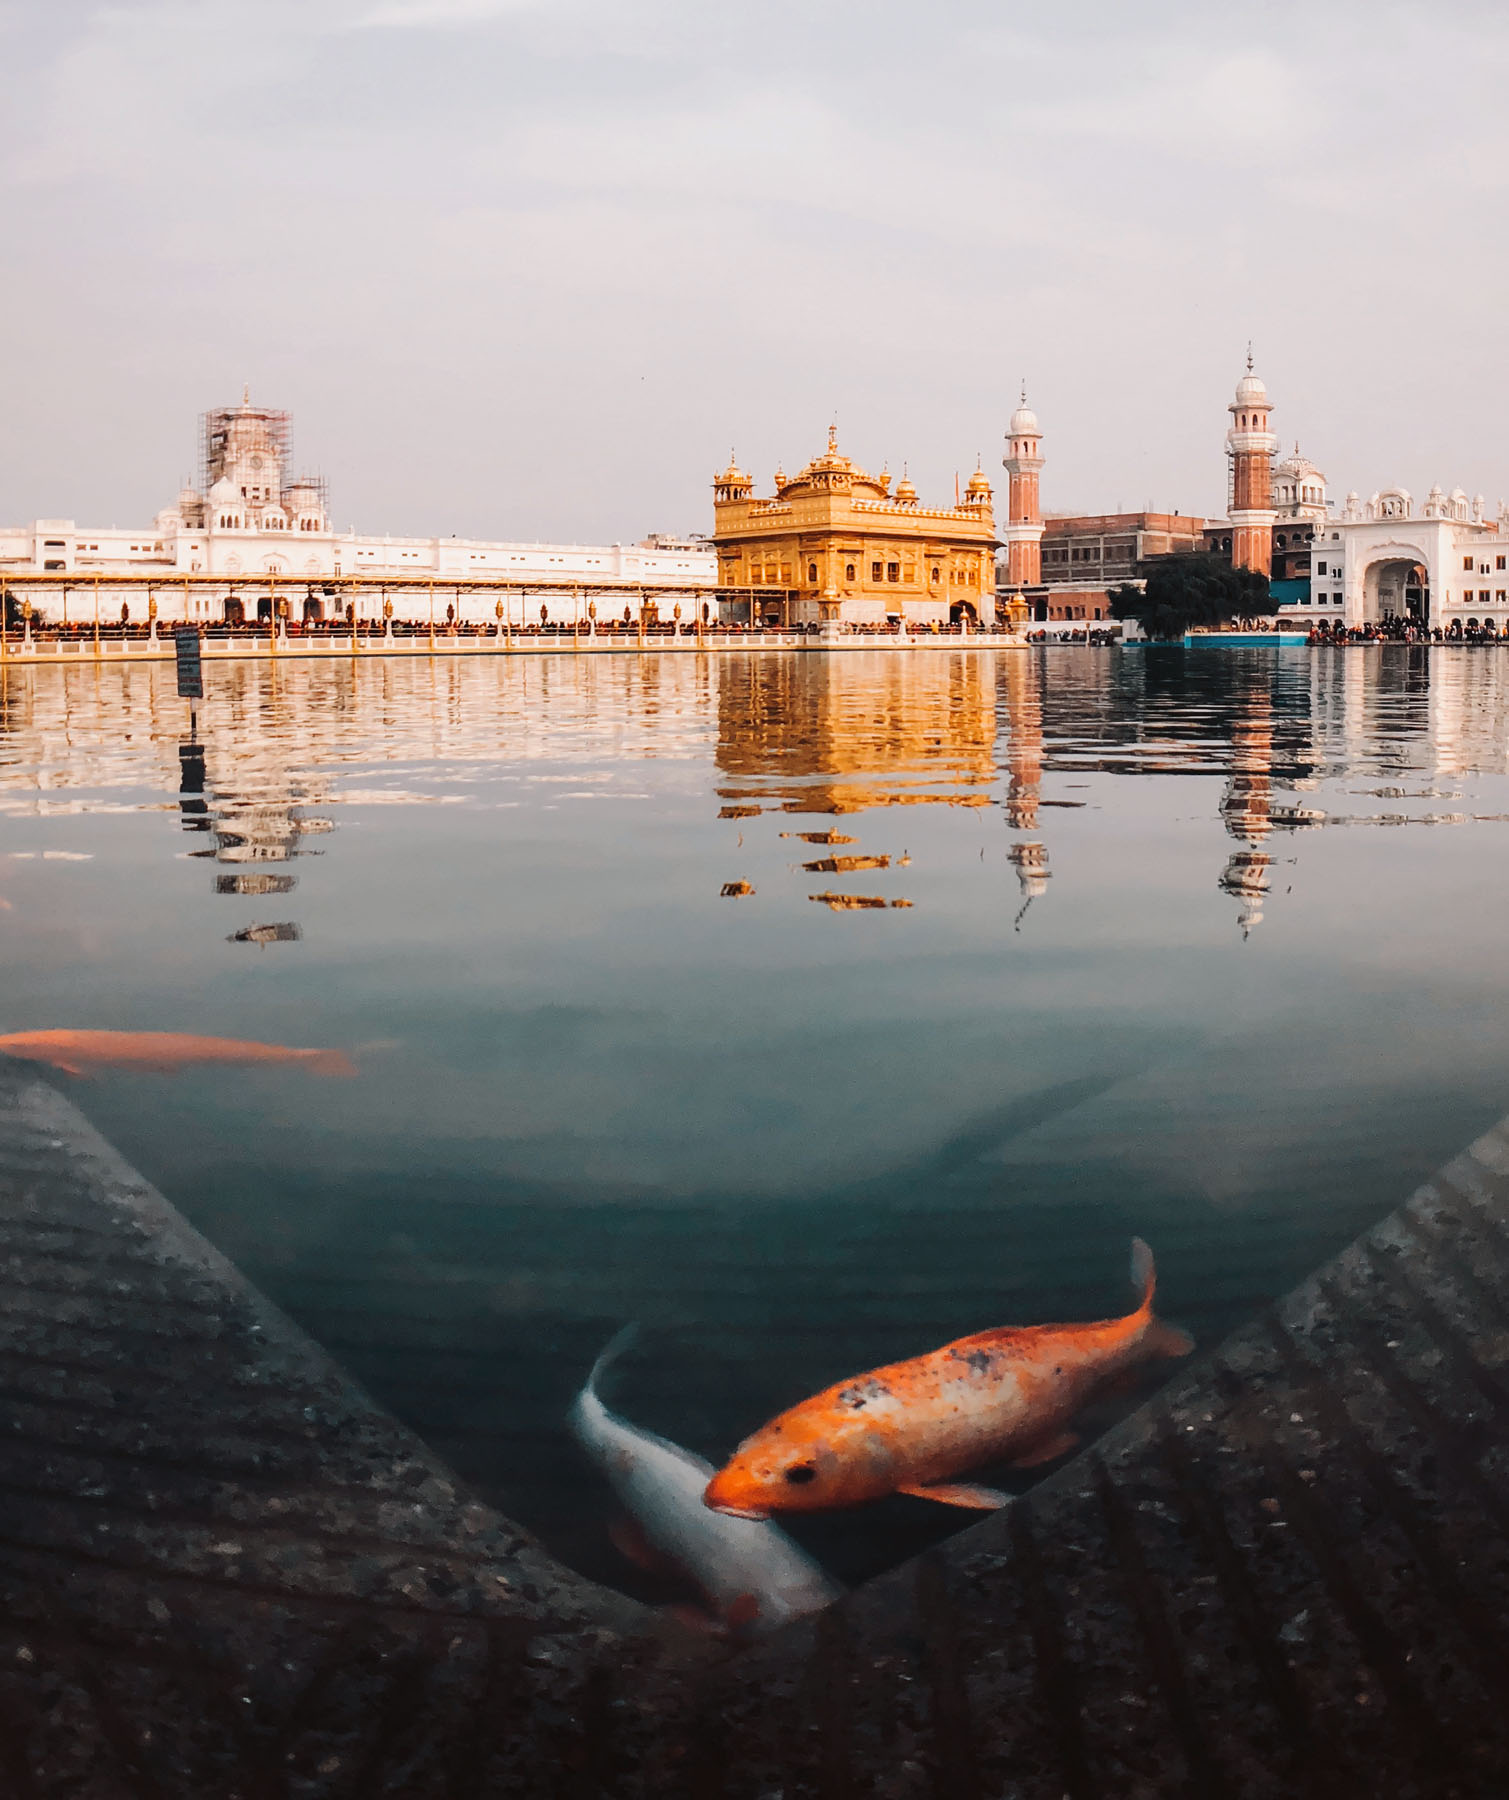 Knocking at his door to let us all in.